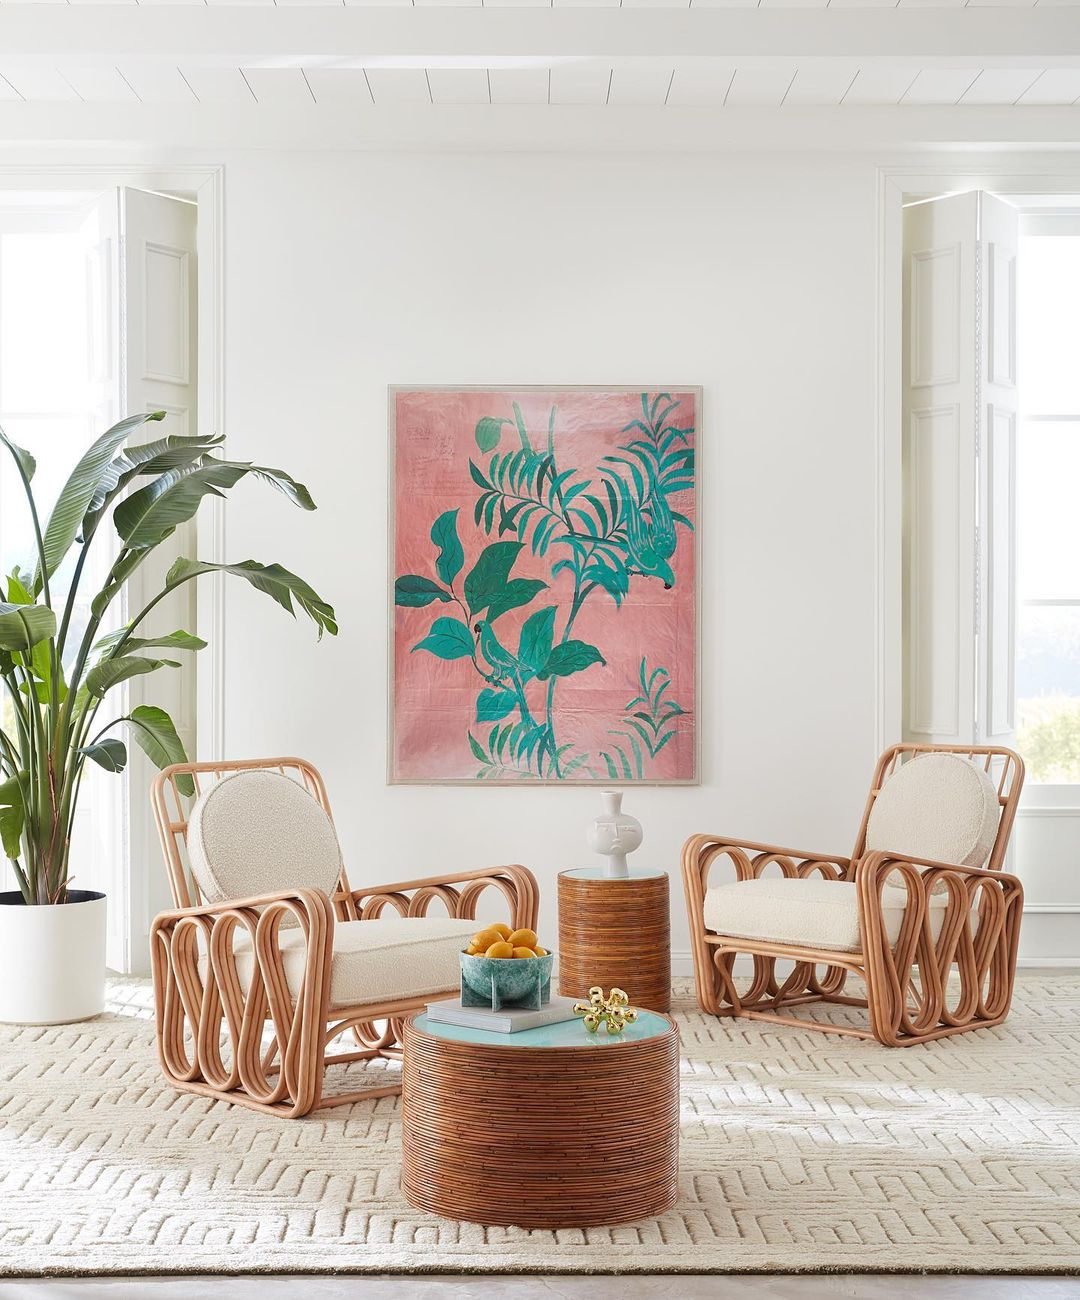 a stylish Riviera-themed interior space